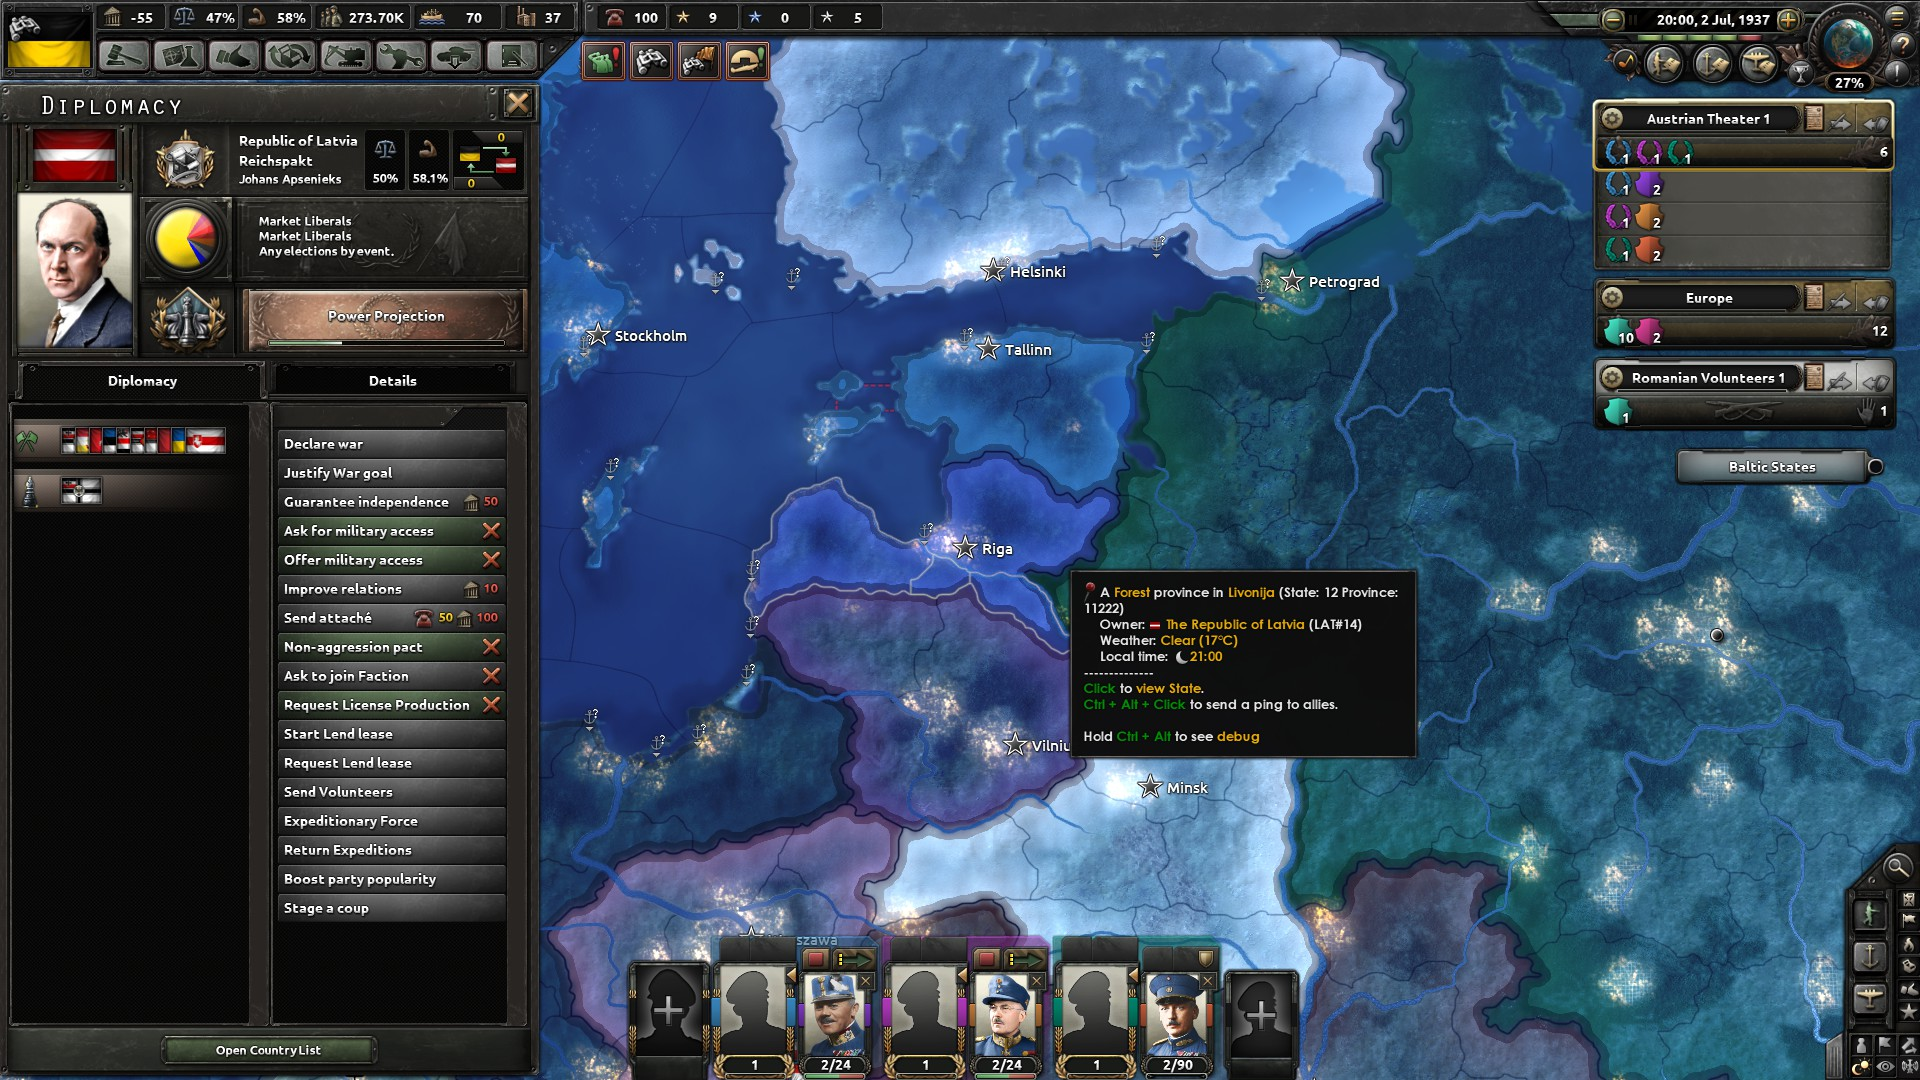 Baltic got wiped out, Germany annex LAT and EST only to